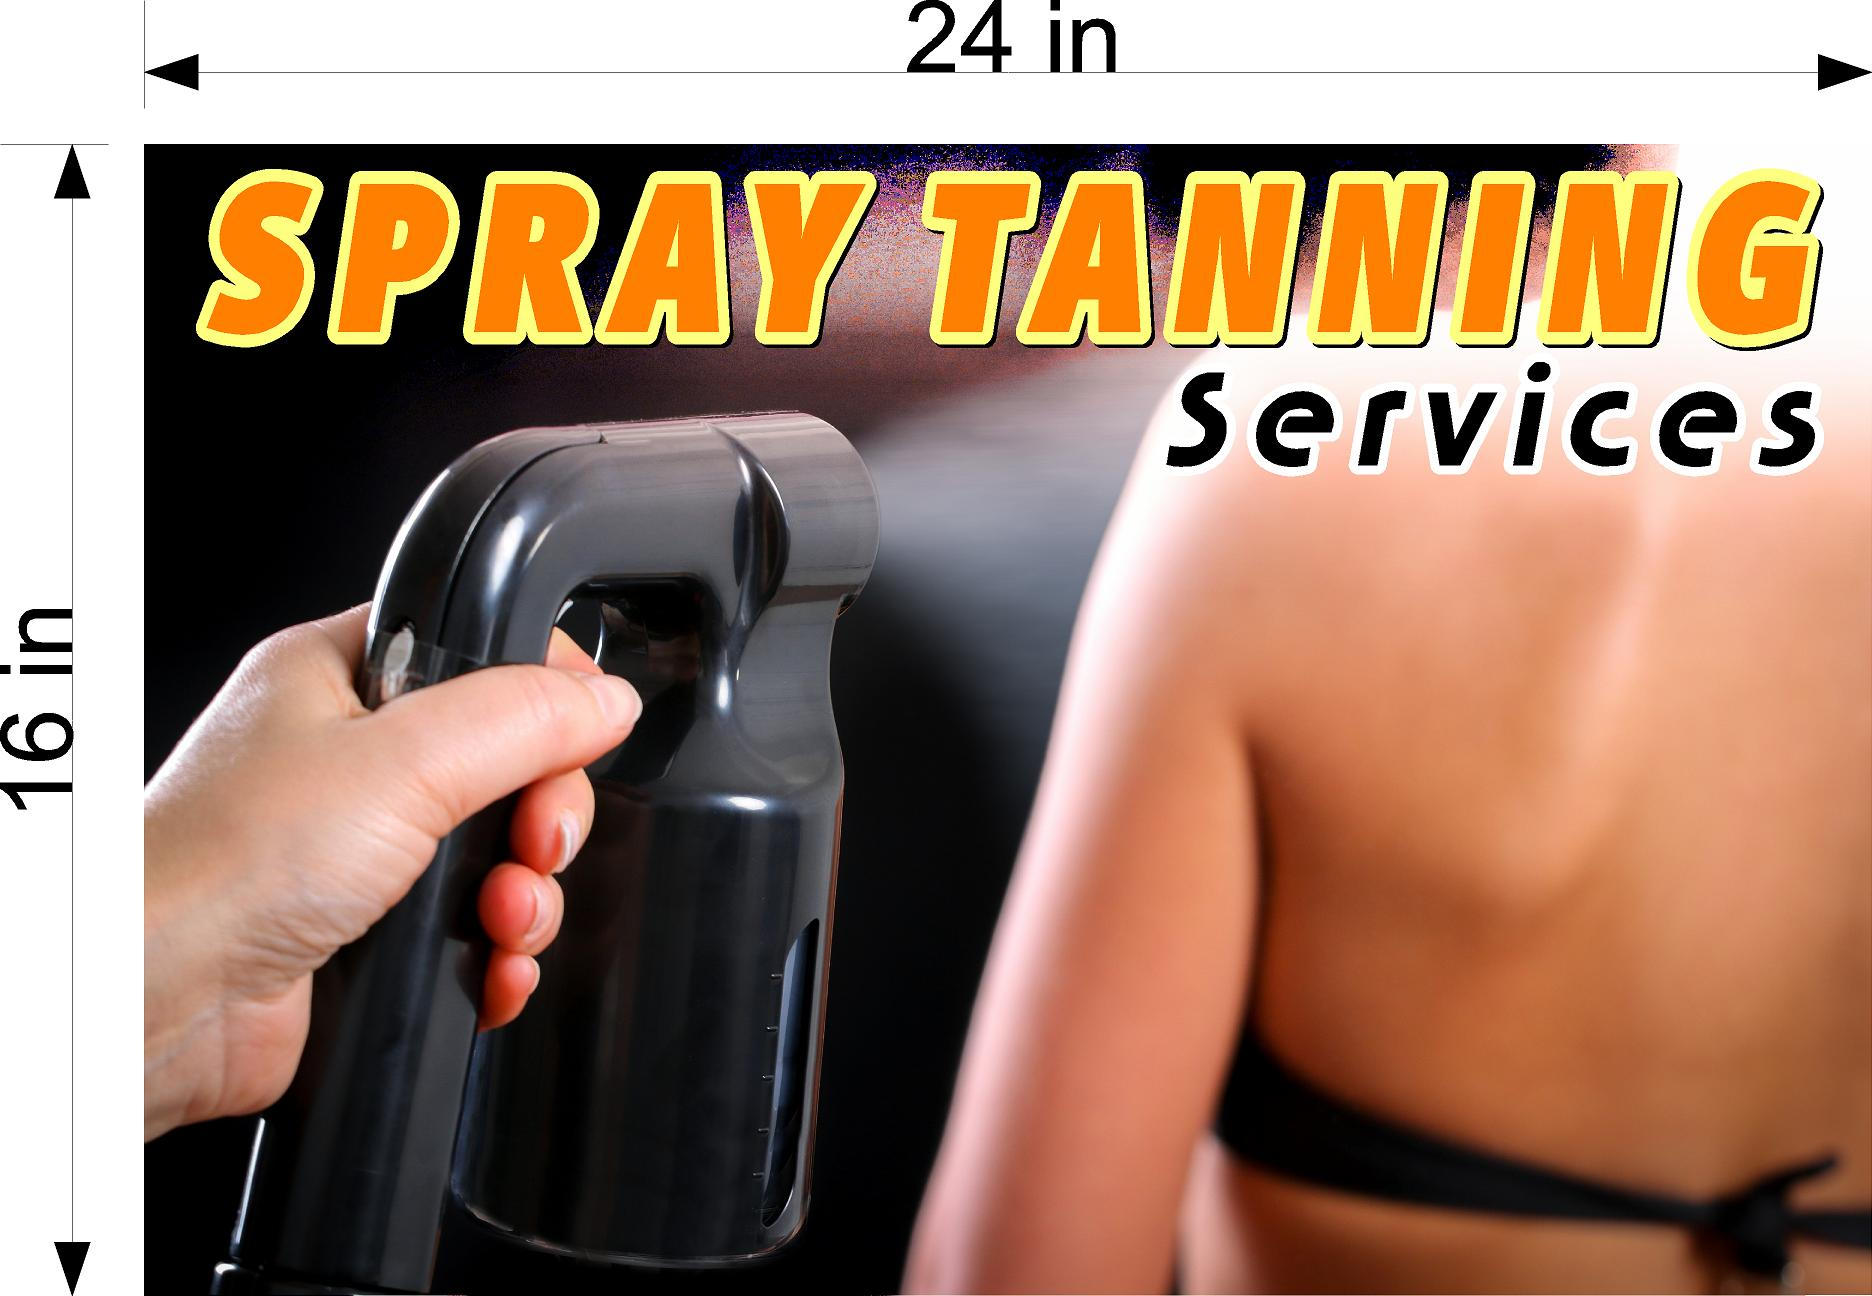 Tanning 08 Wallpaper Poster Decal with Adhesive Backing Wall Sticker Decor Interior Sign Spray Service Solarium Horizontal